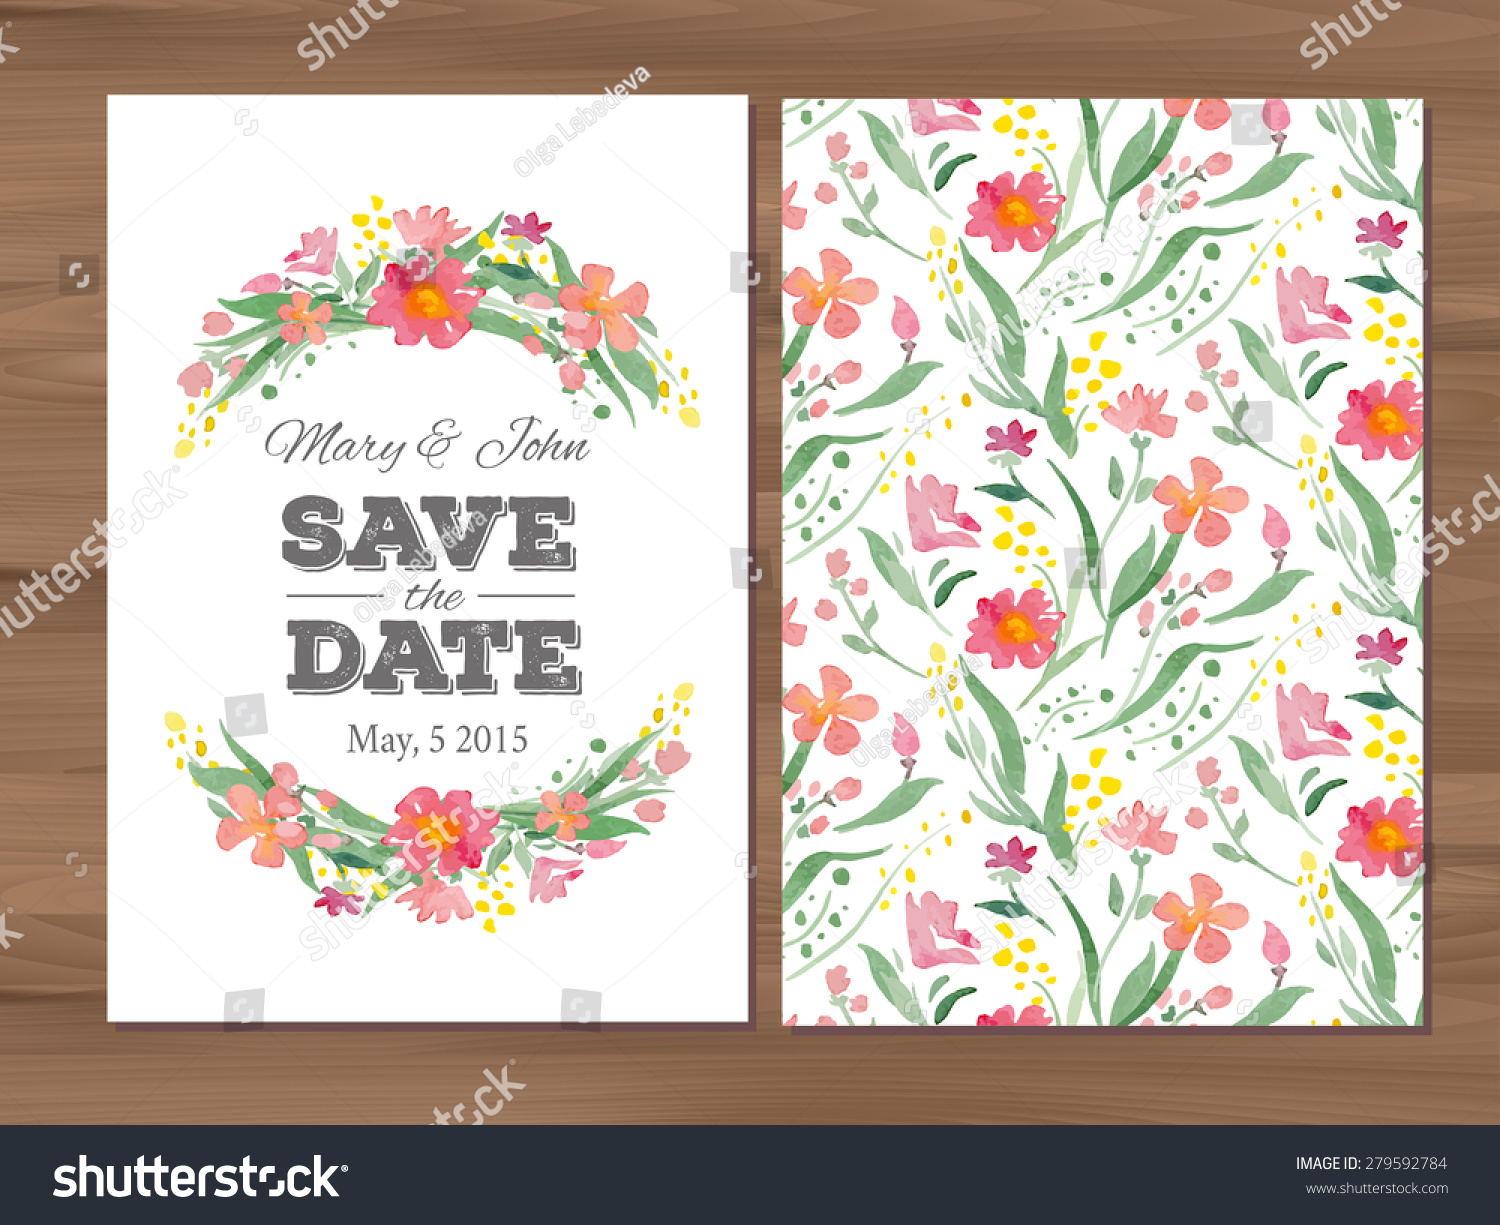 Save Date Wedding Invitation Watercolor Flowers Stock Vector ...